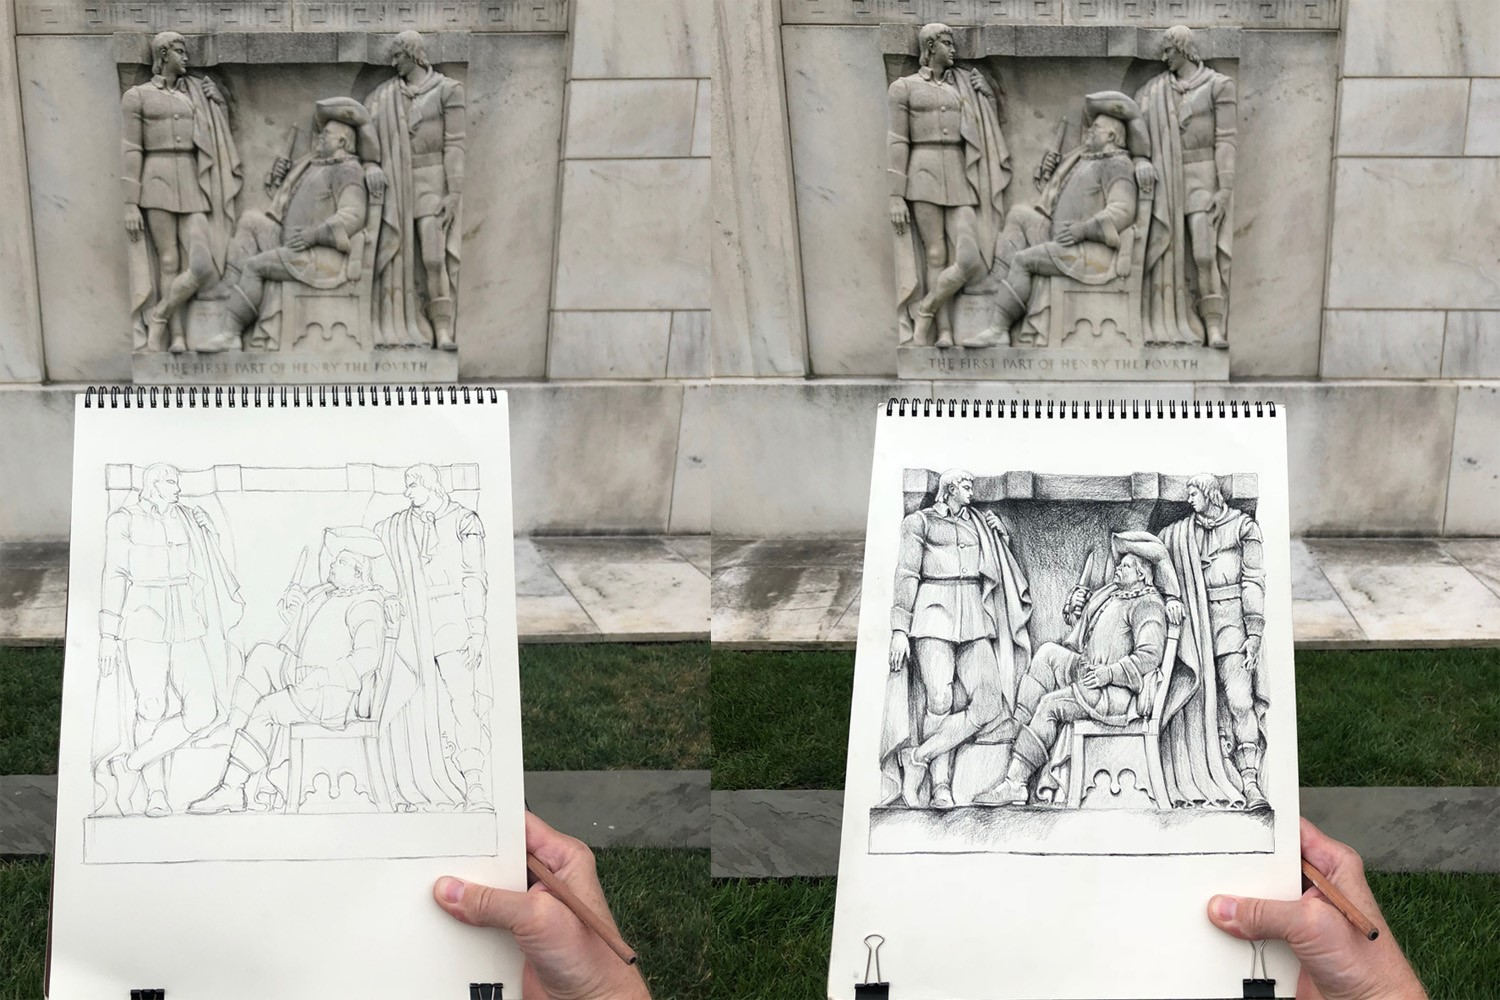 Drawing by Paul Glenshaw of the Folger bas-relief depicting a scene from Henry IV, Part 1